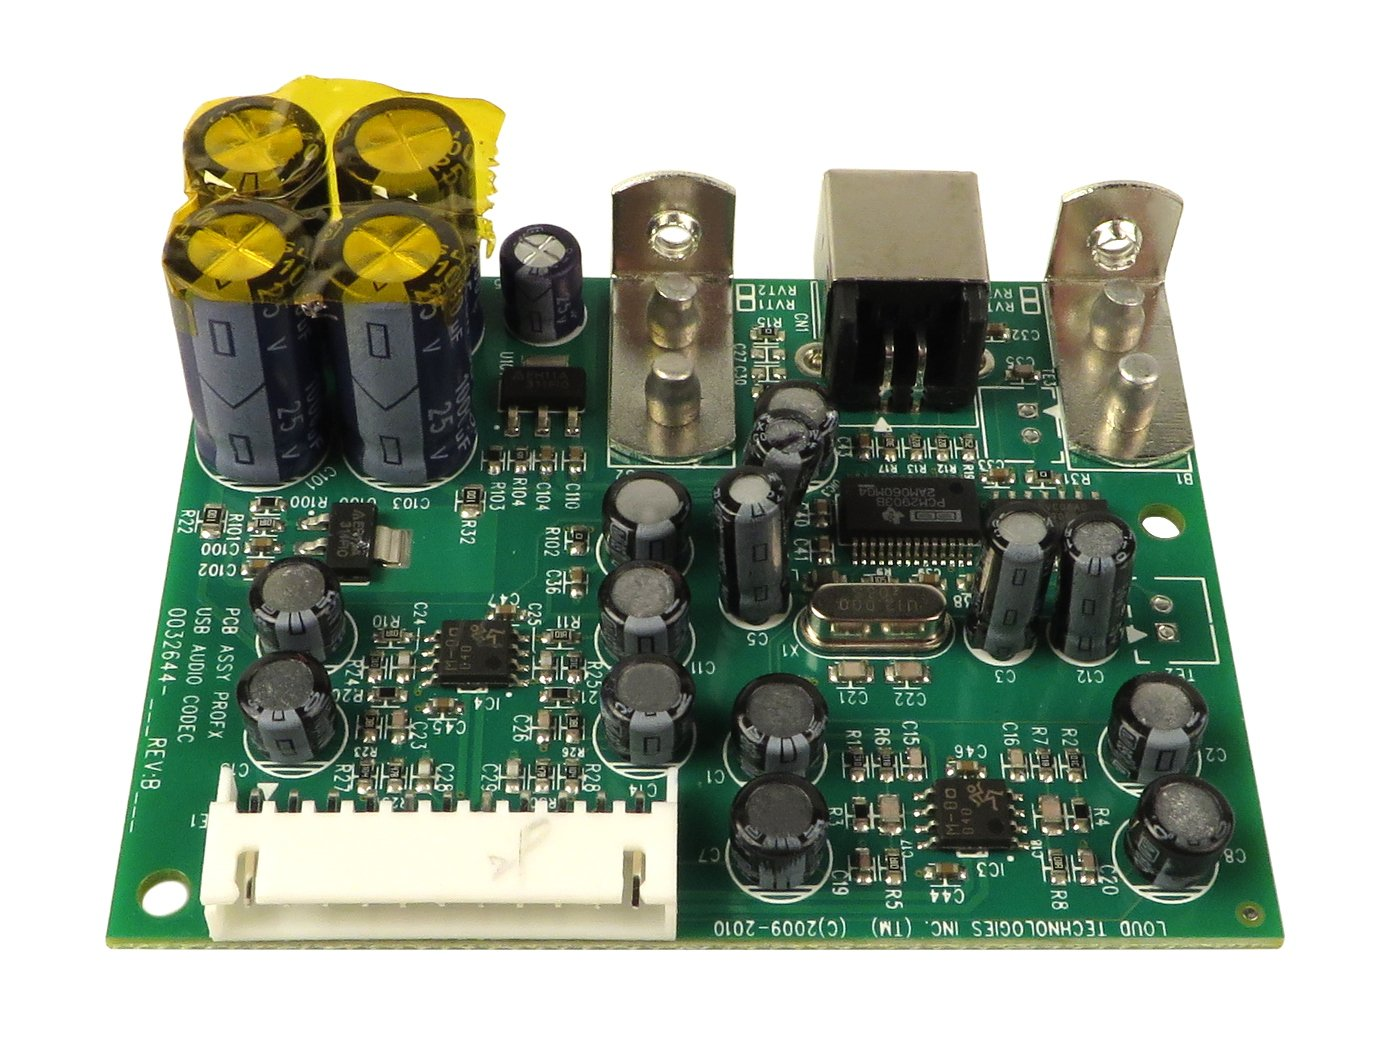 USB Audio Codec PCB Assembly for ProFX16 and ProFX22